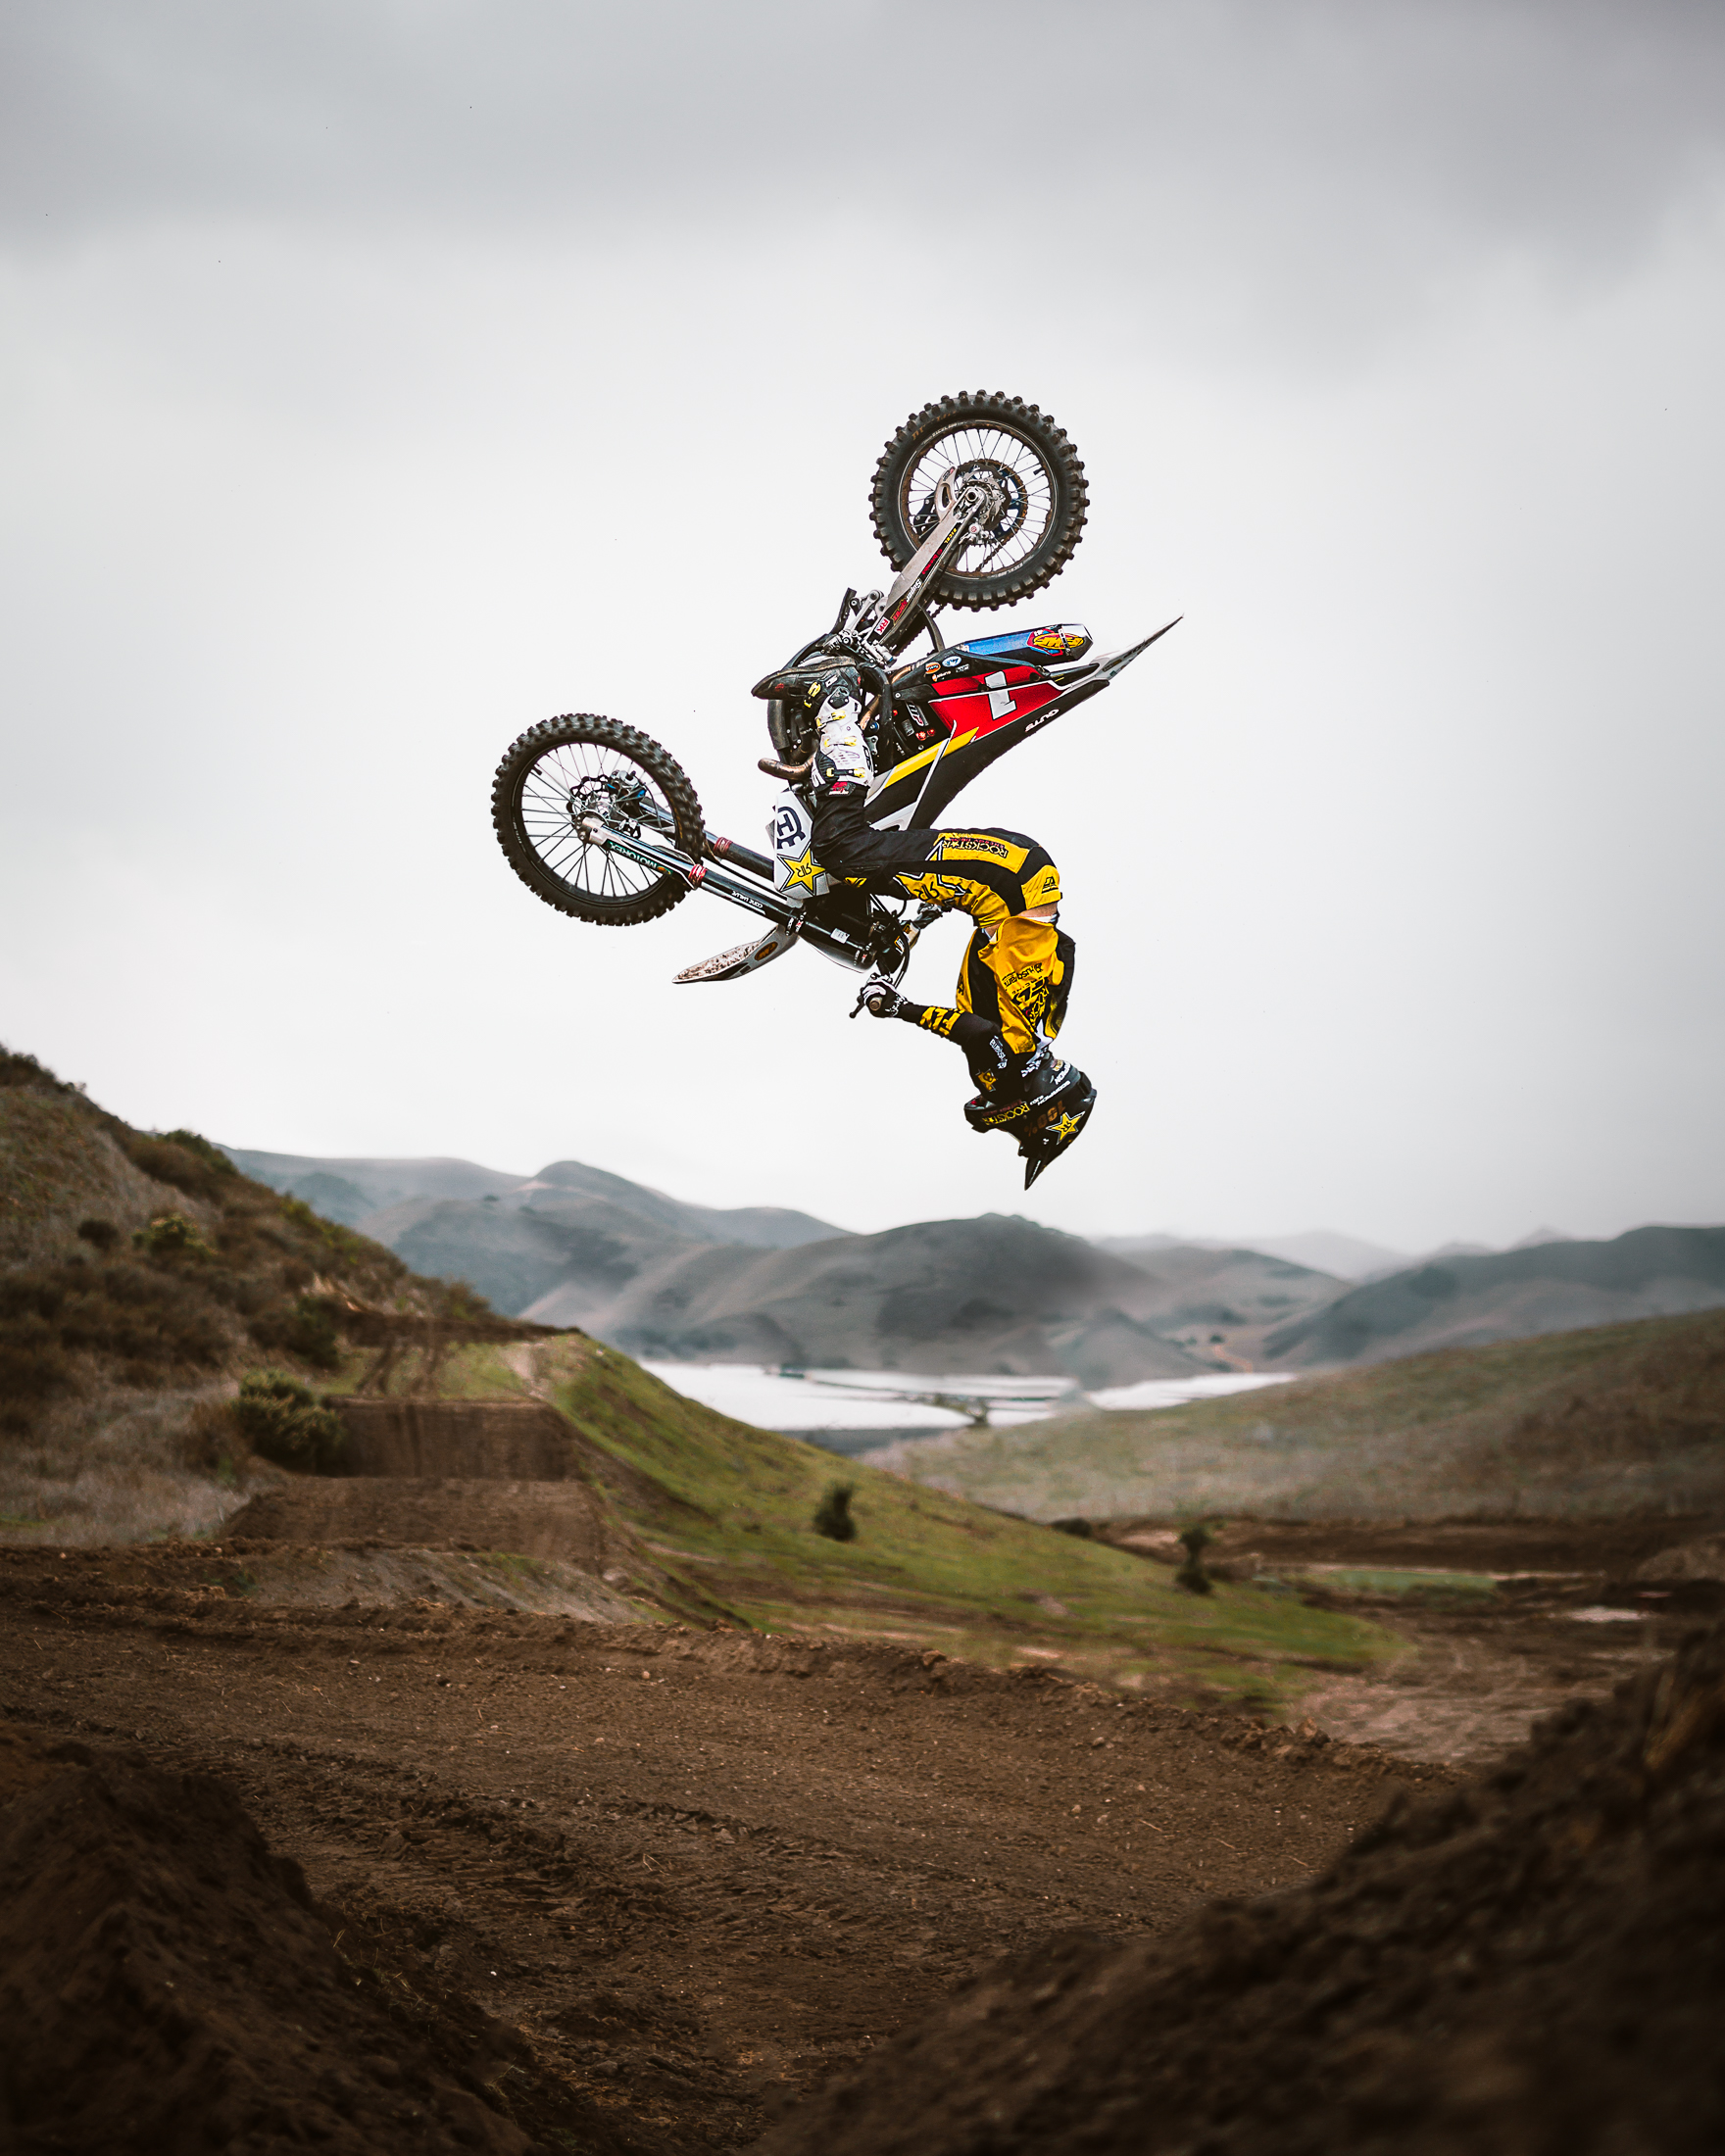 jimmy_bowron_photo_colton_haaker_backflip_castillo_ranch.jpg